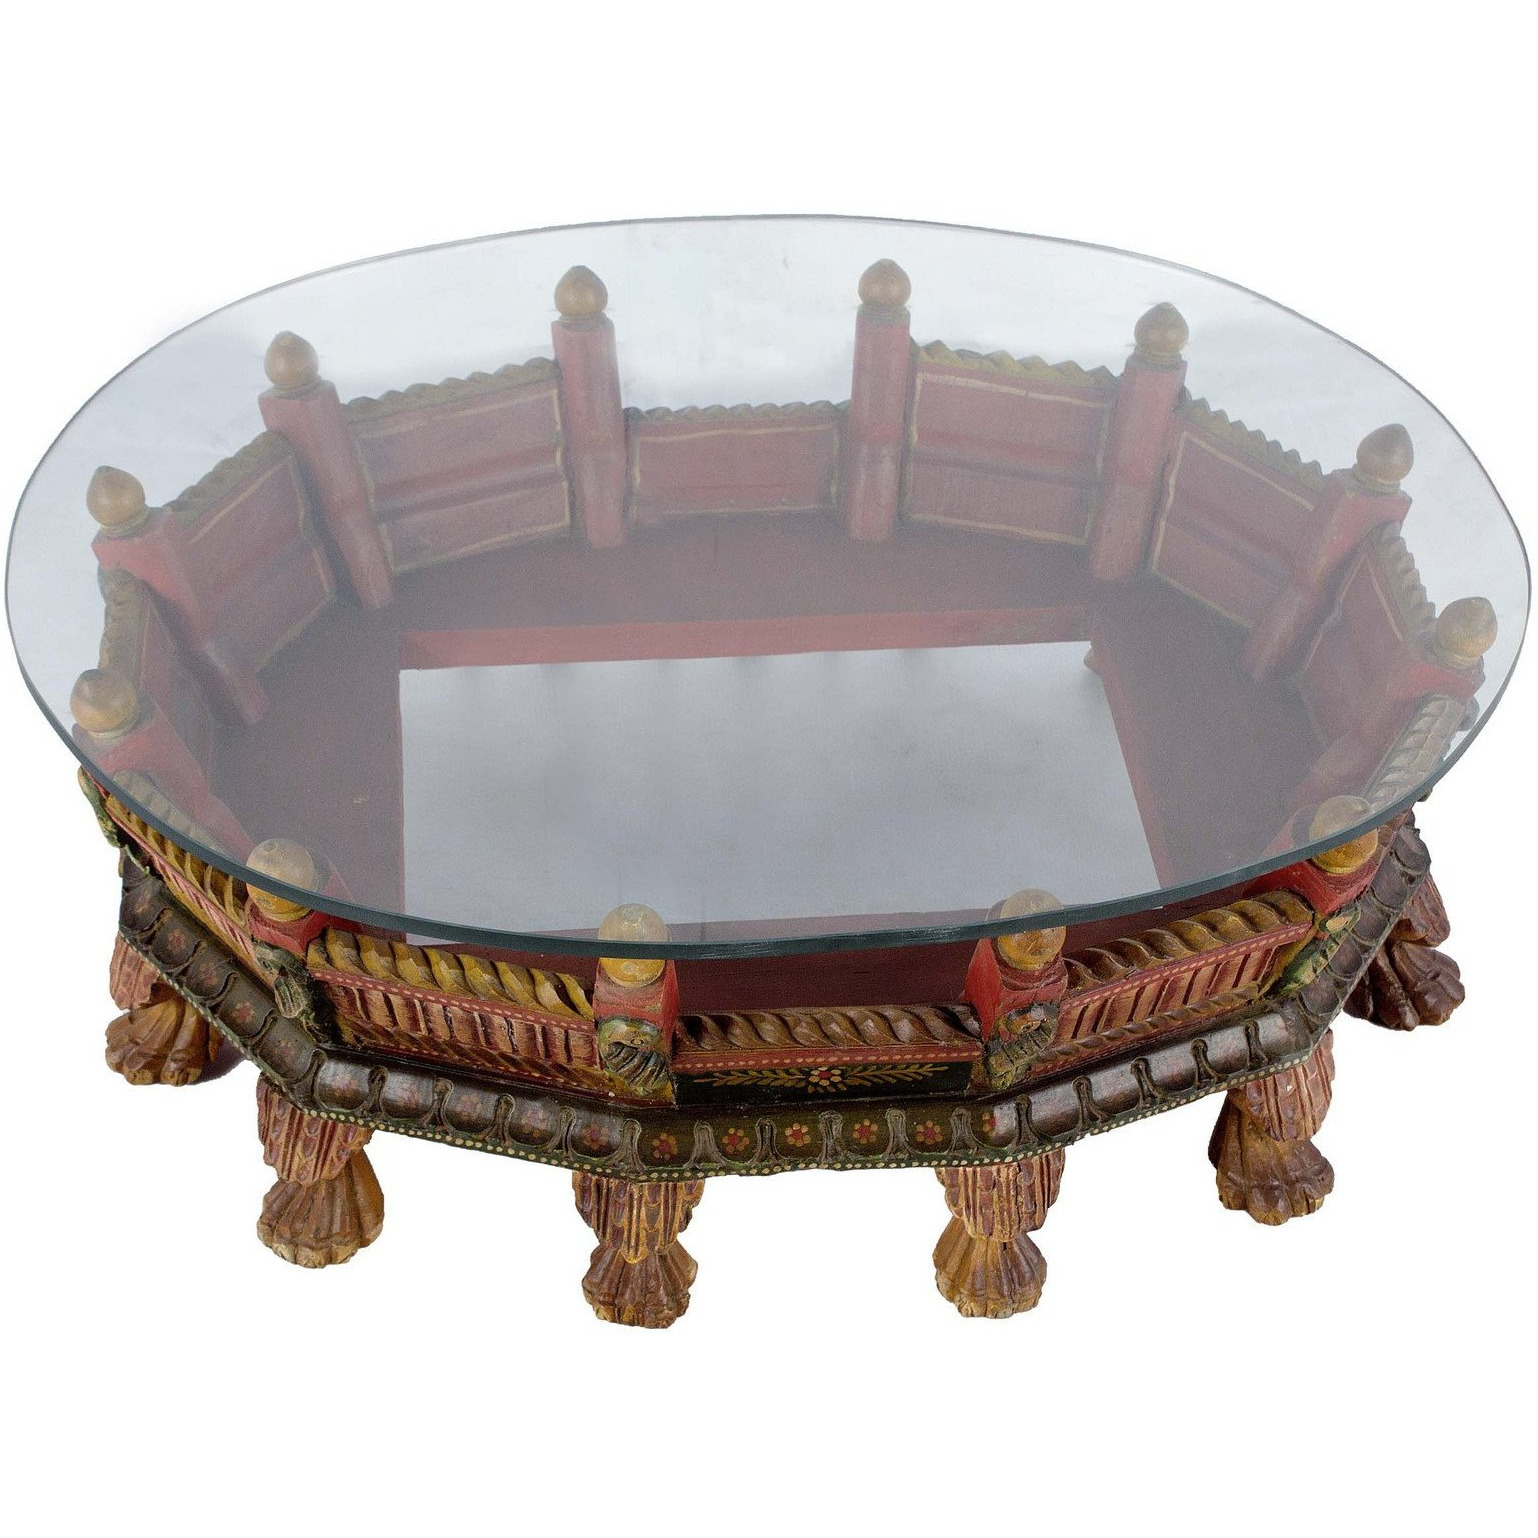 Handmade Oval Palkhi Coffee Table - Hand painted Multicolor finish